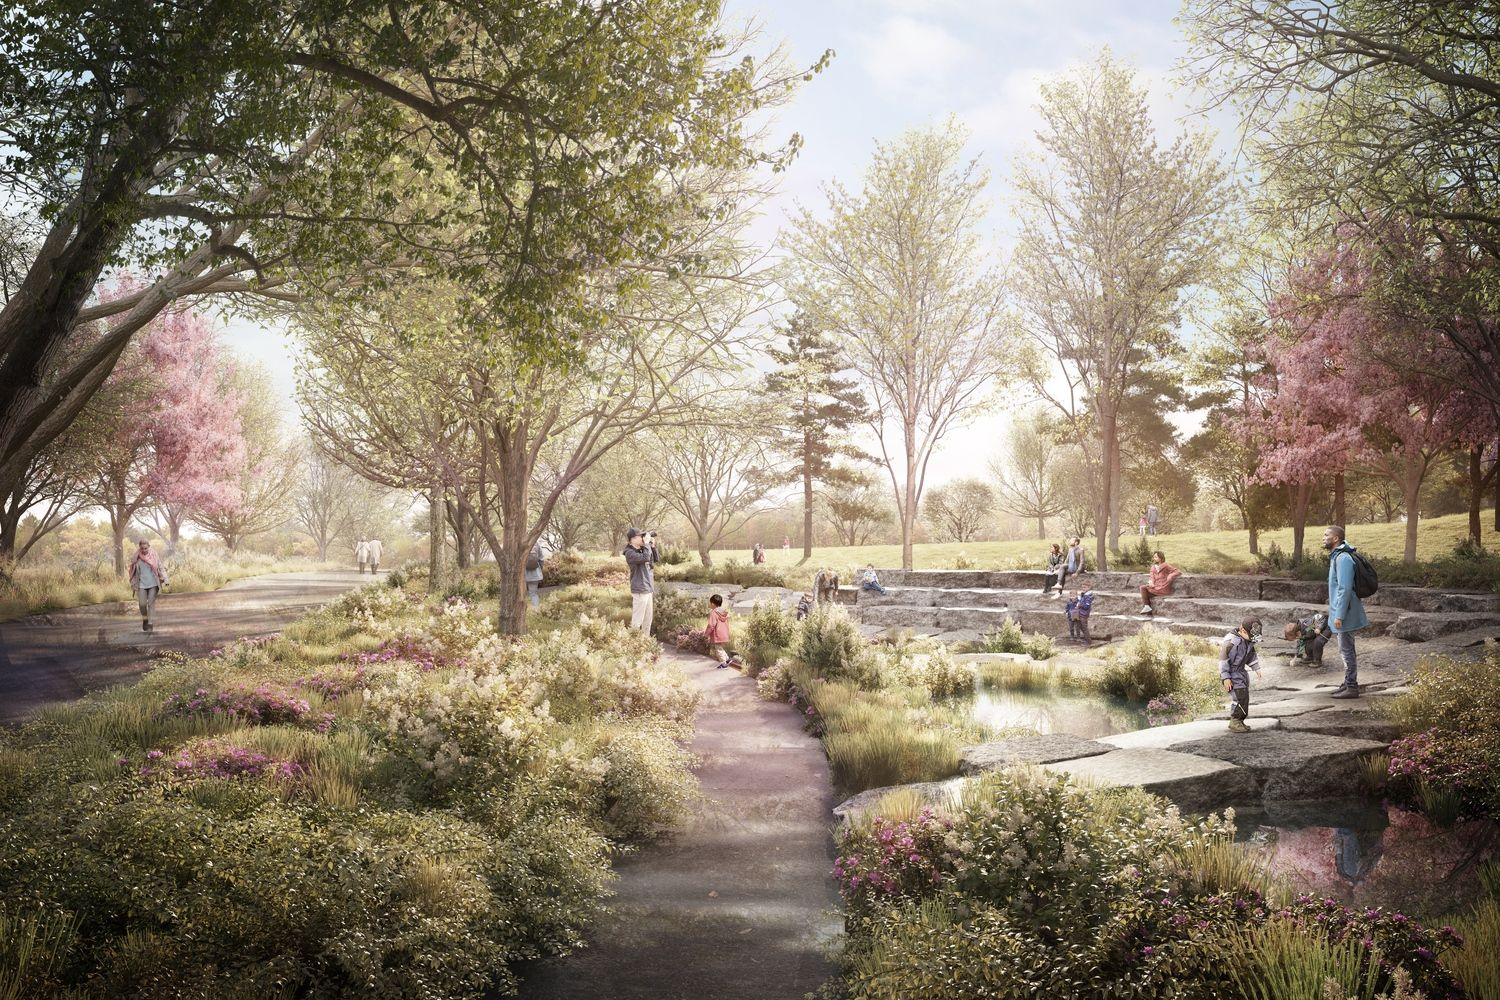 Gallery of New Renderings Released for Obama Presidential Center in Chicago - 9